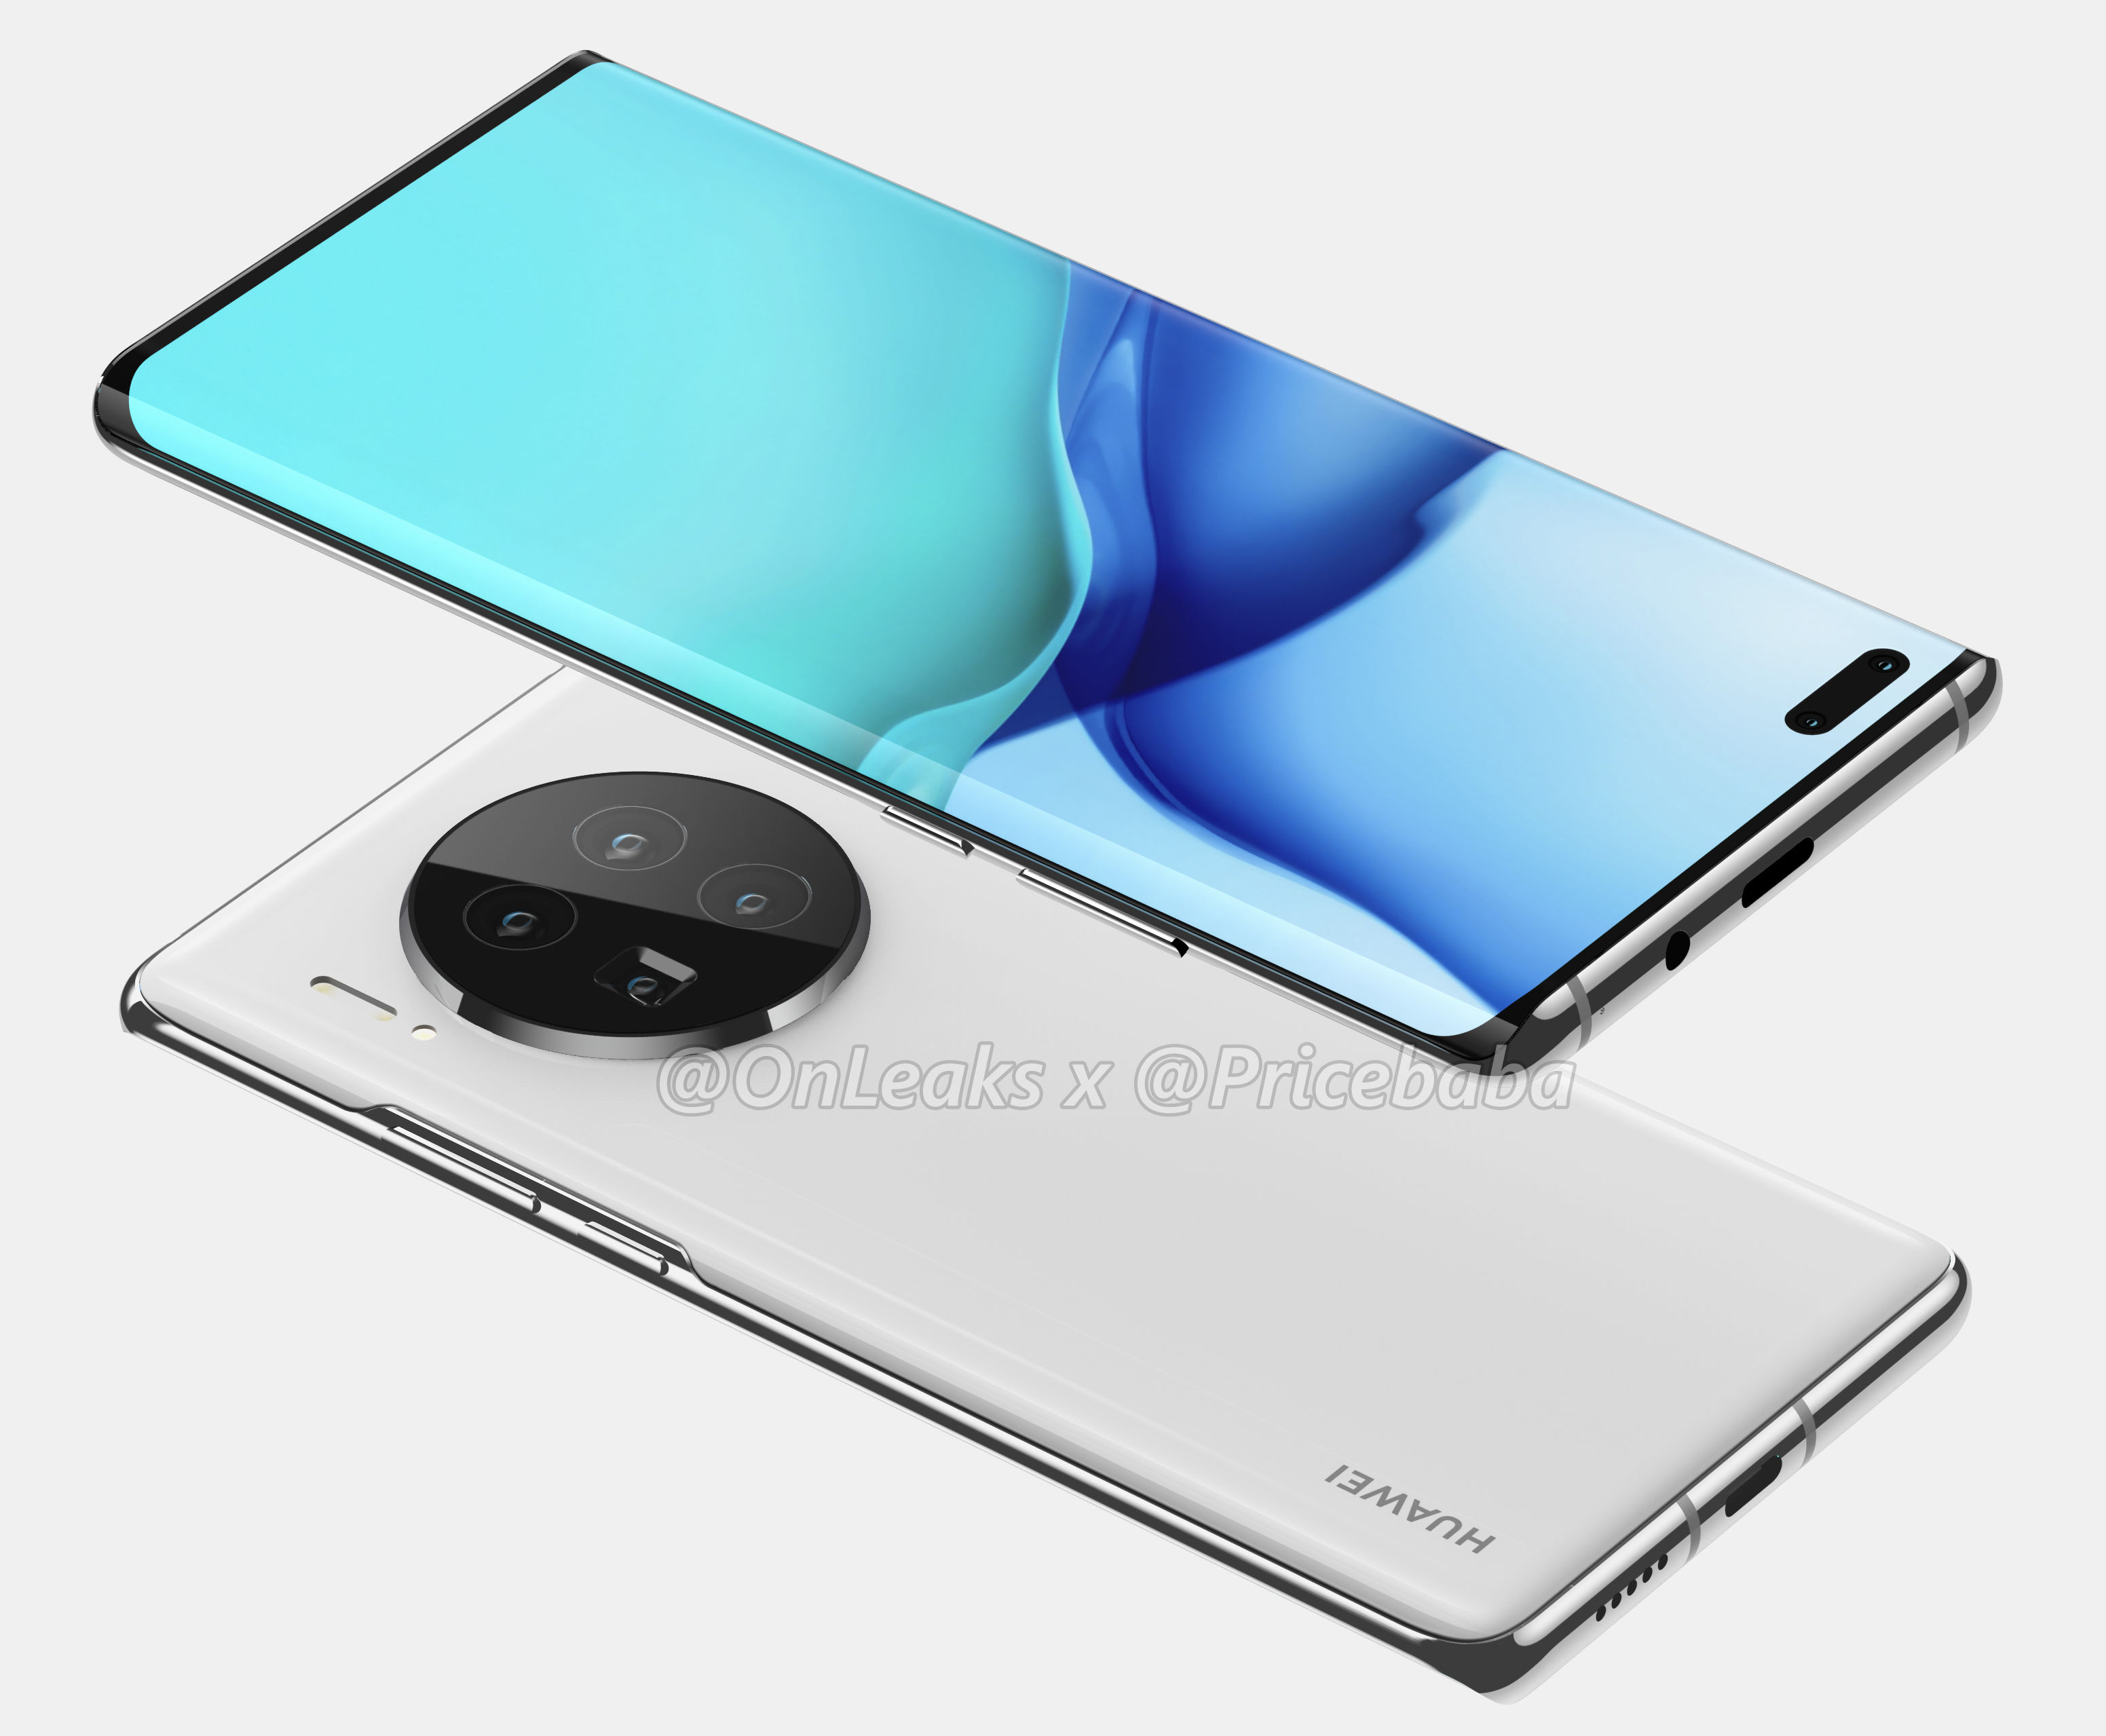 Leaked Render Images of The Huawei Mate 40 Series